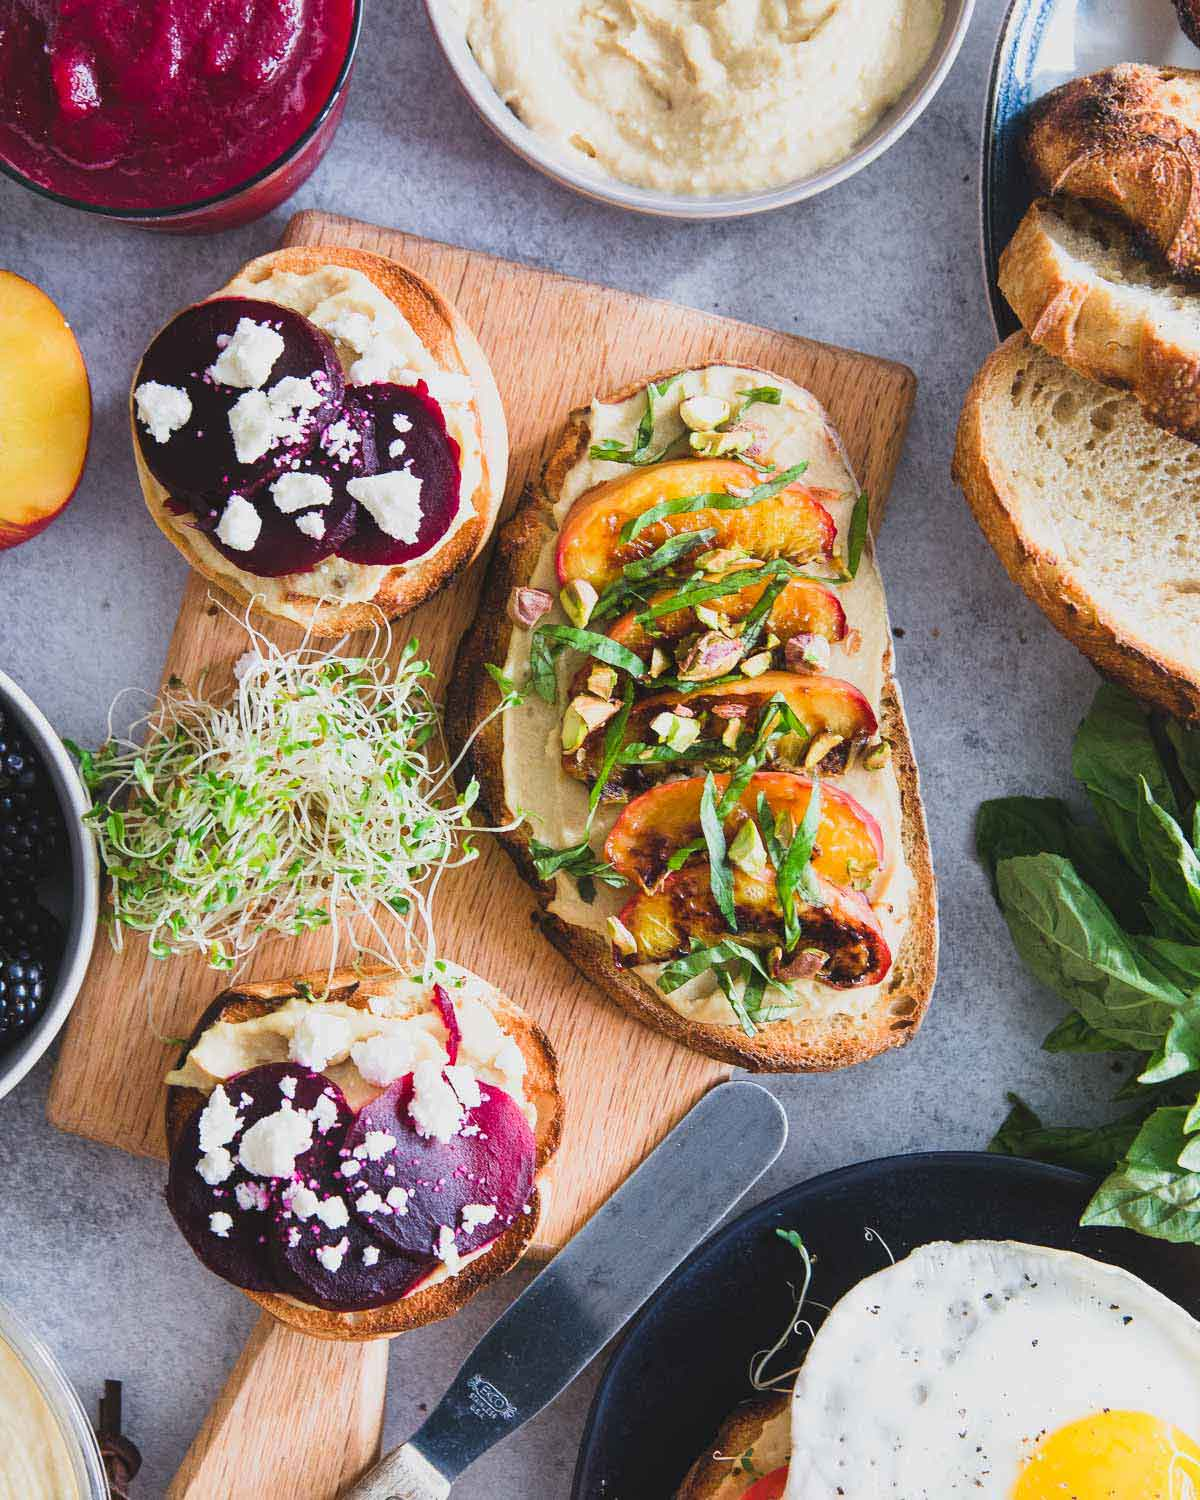 Pair this healthy beet smoothie with beet feta hummus toast mini bagels for an easy breakfast or brunch idea.